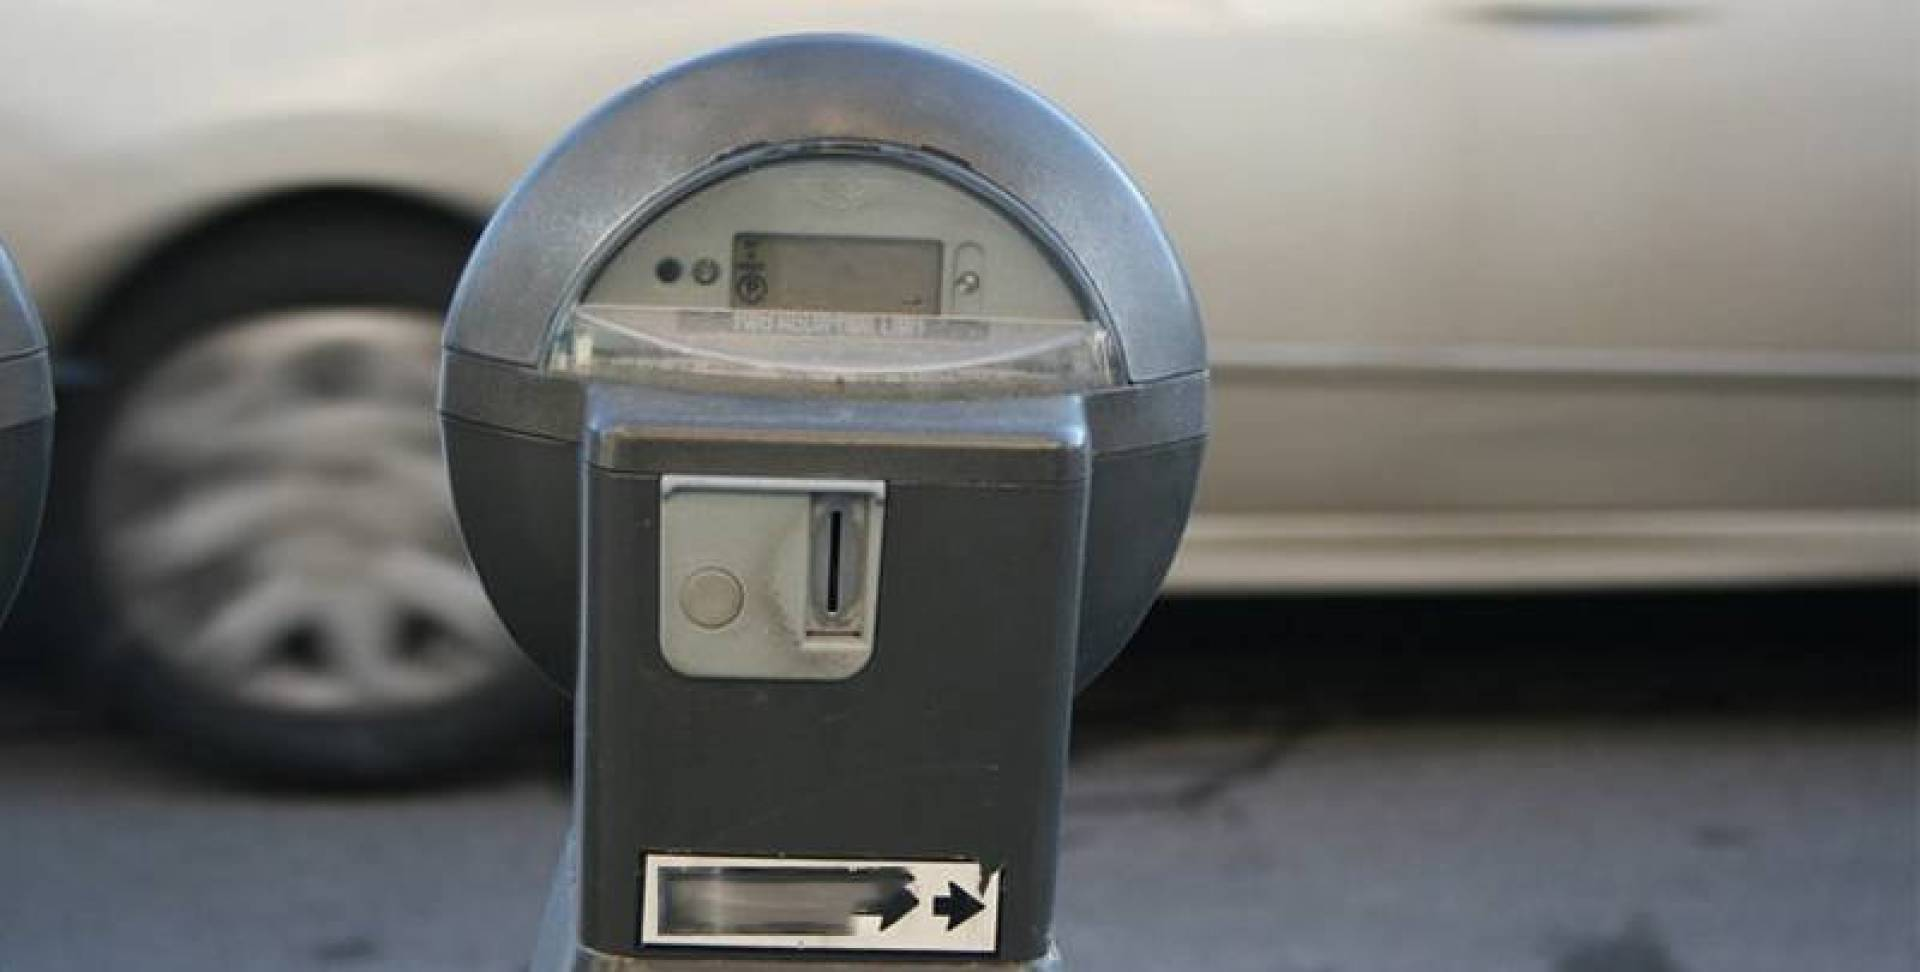 Municipality plans to reinstate side parking meters